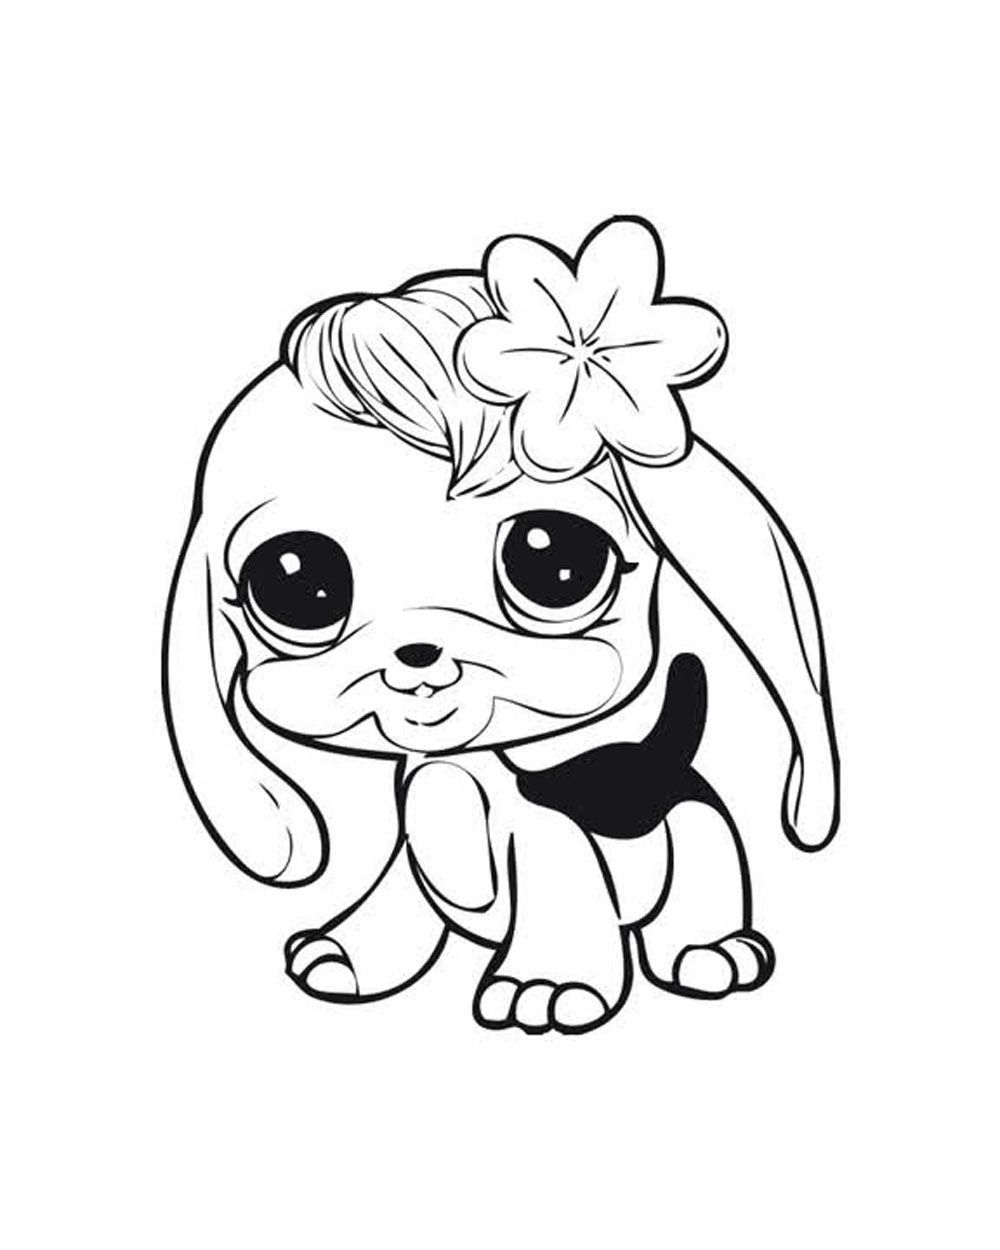 Free coloring pages littlest pet shop - Littlest Pet Shop Coloring Pages To Color Coloring Pages Prairie